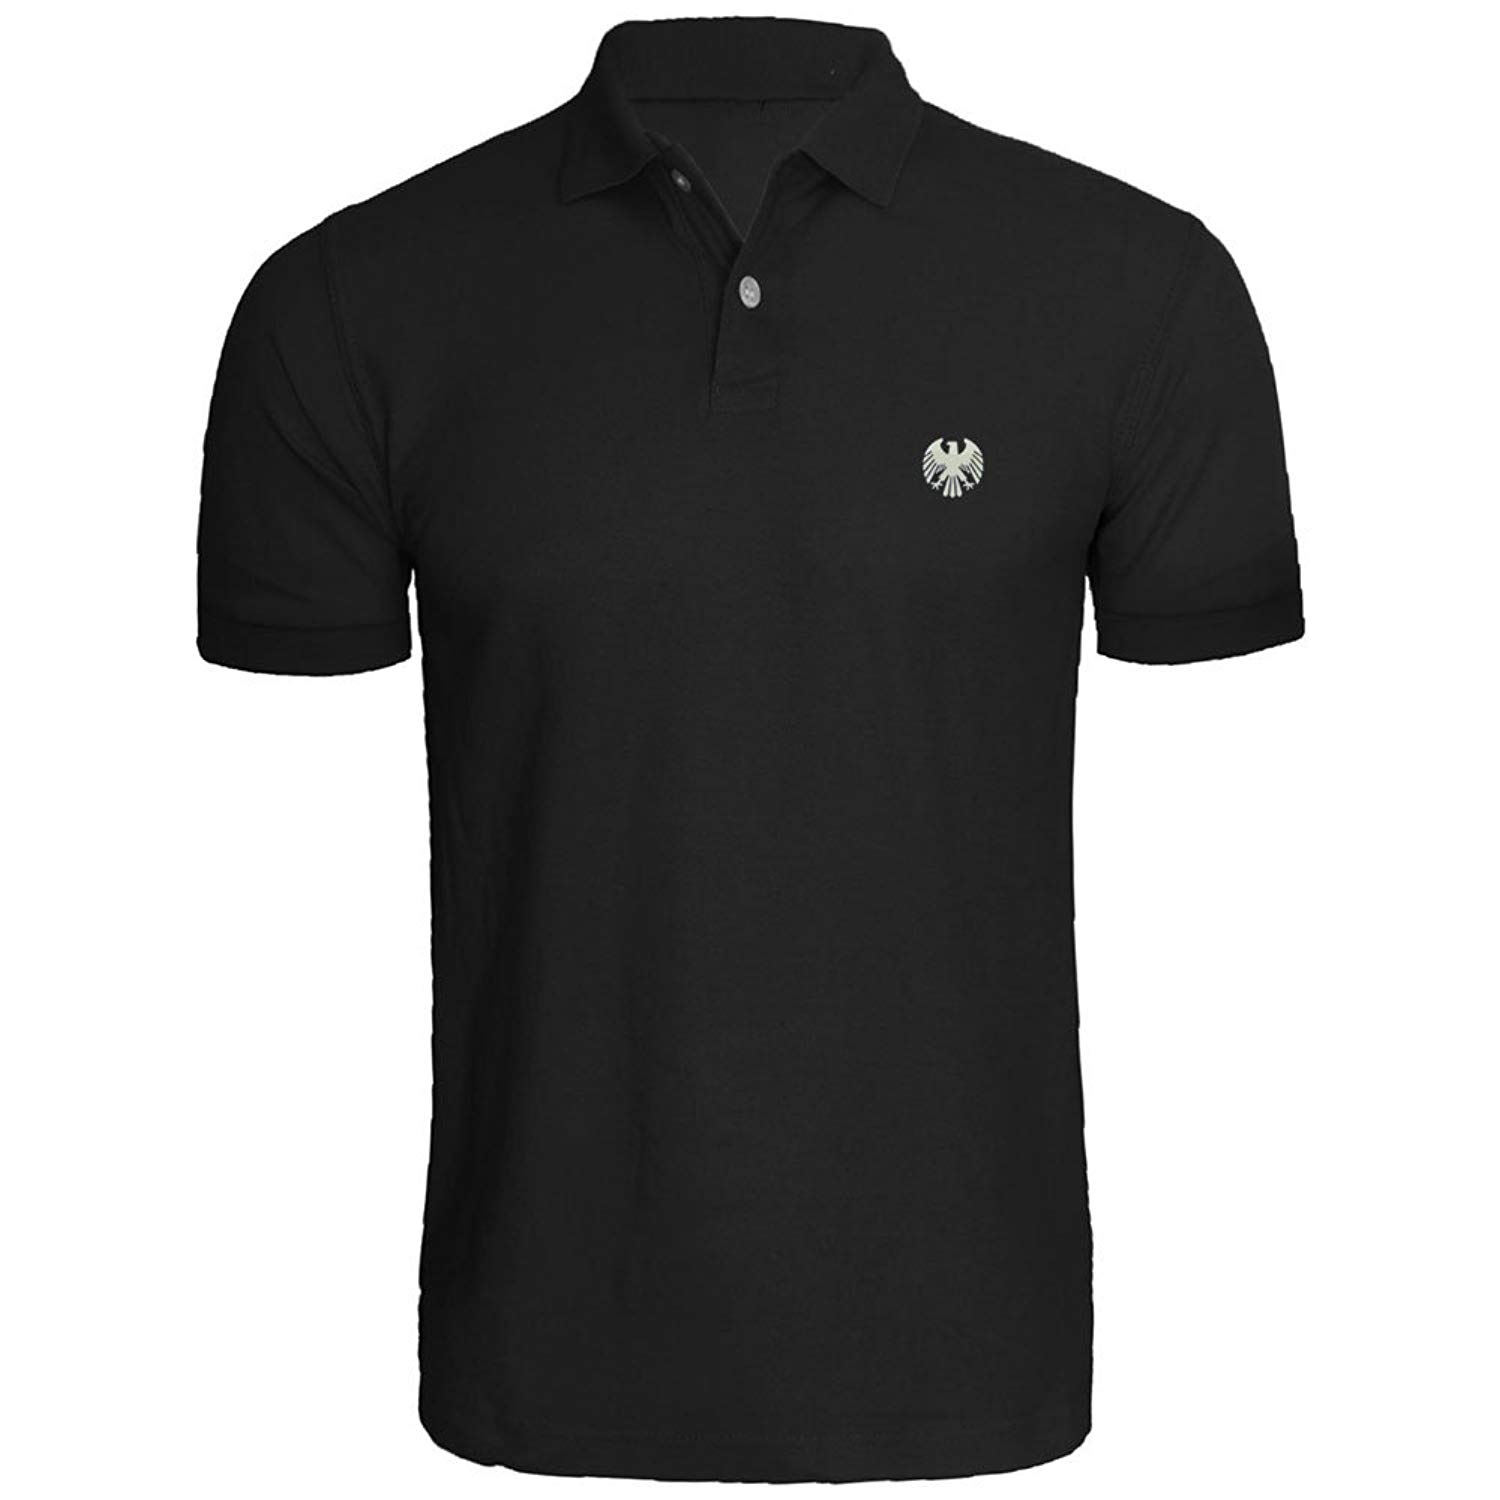 9472f20a326 Get Quotations · Loo Show Mens German Eagle Embroidered Polo Shirts Men  Shirts